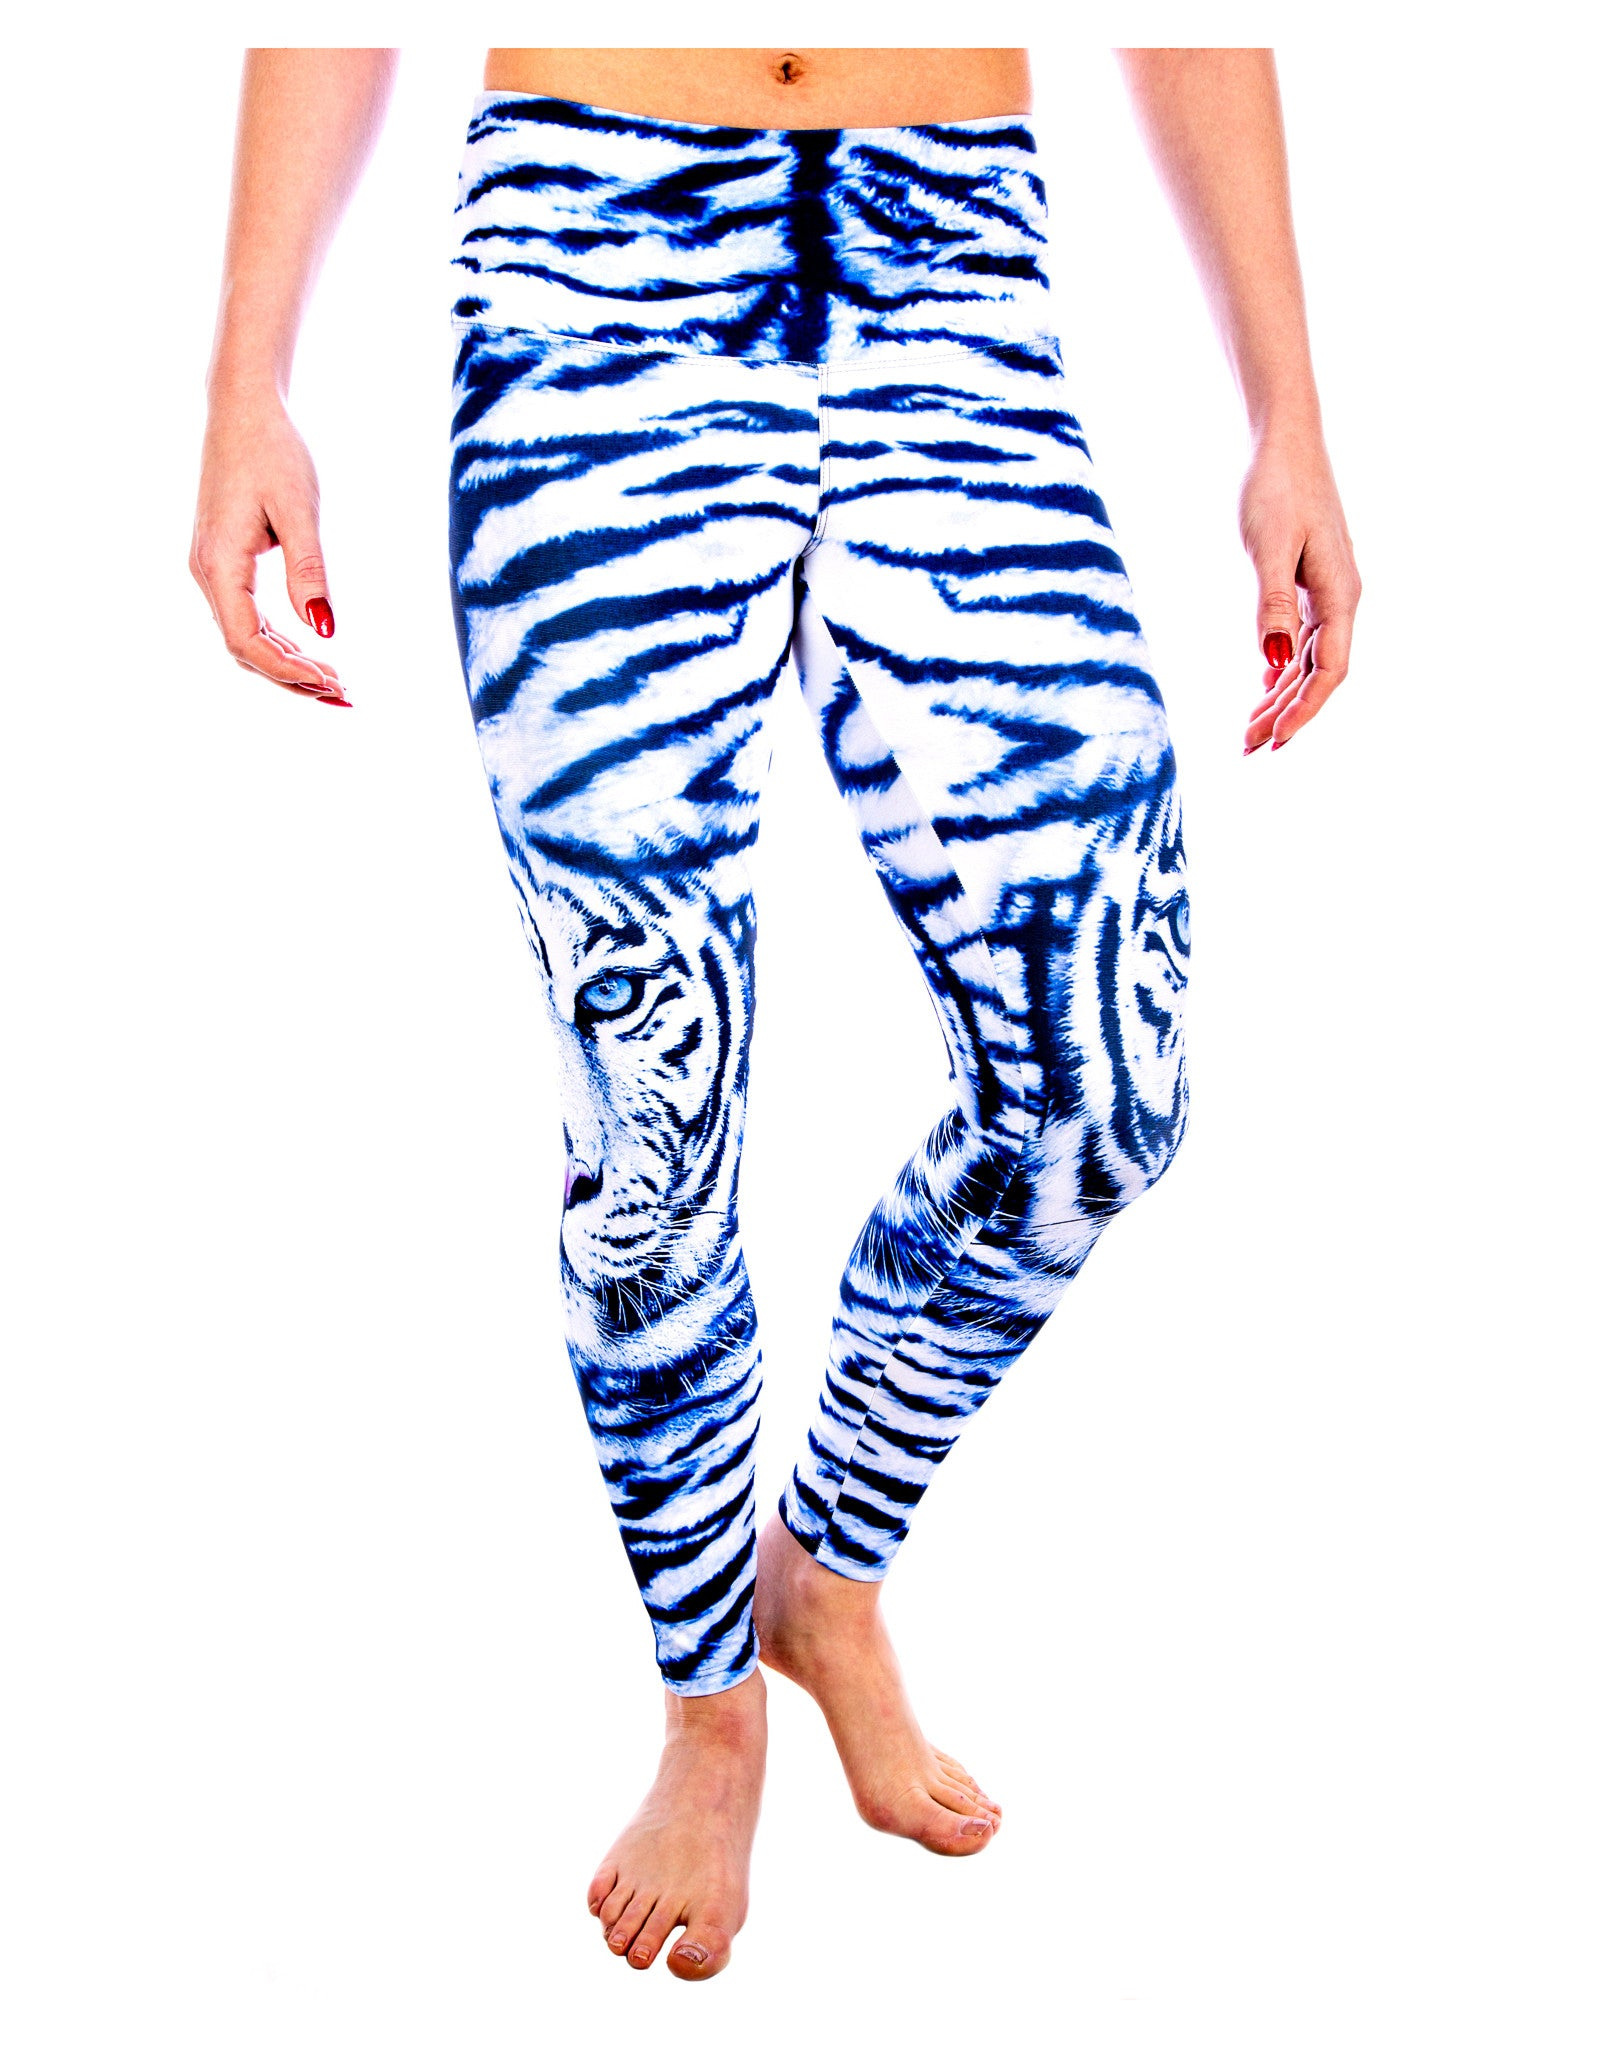 923c8bc7c2 ... Yoga Pants - White Out Snow Tiger Legging - Animal In Me Yoga Pants  Collection by